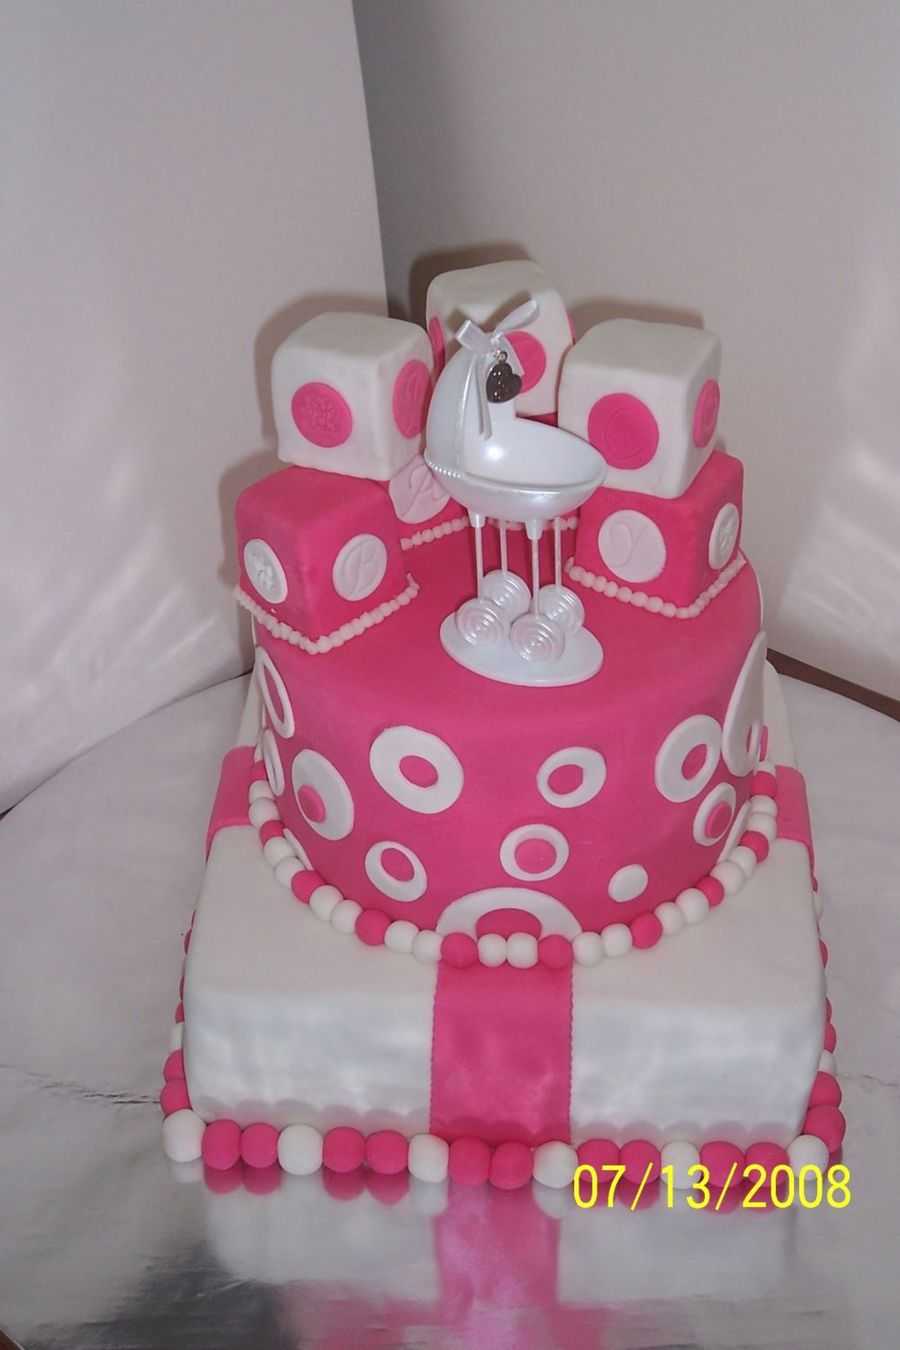 Hot Pink Baby Shower  on Cake Central